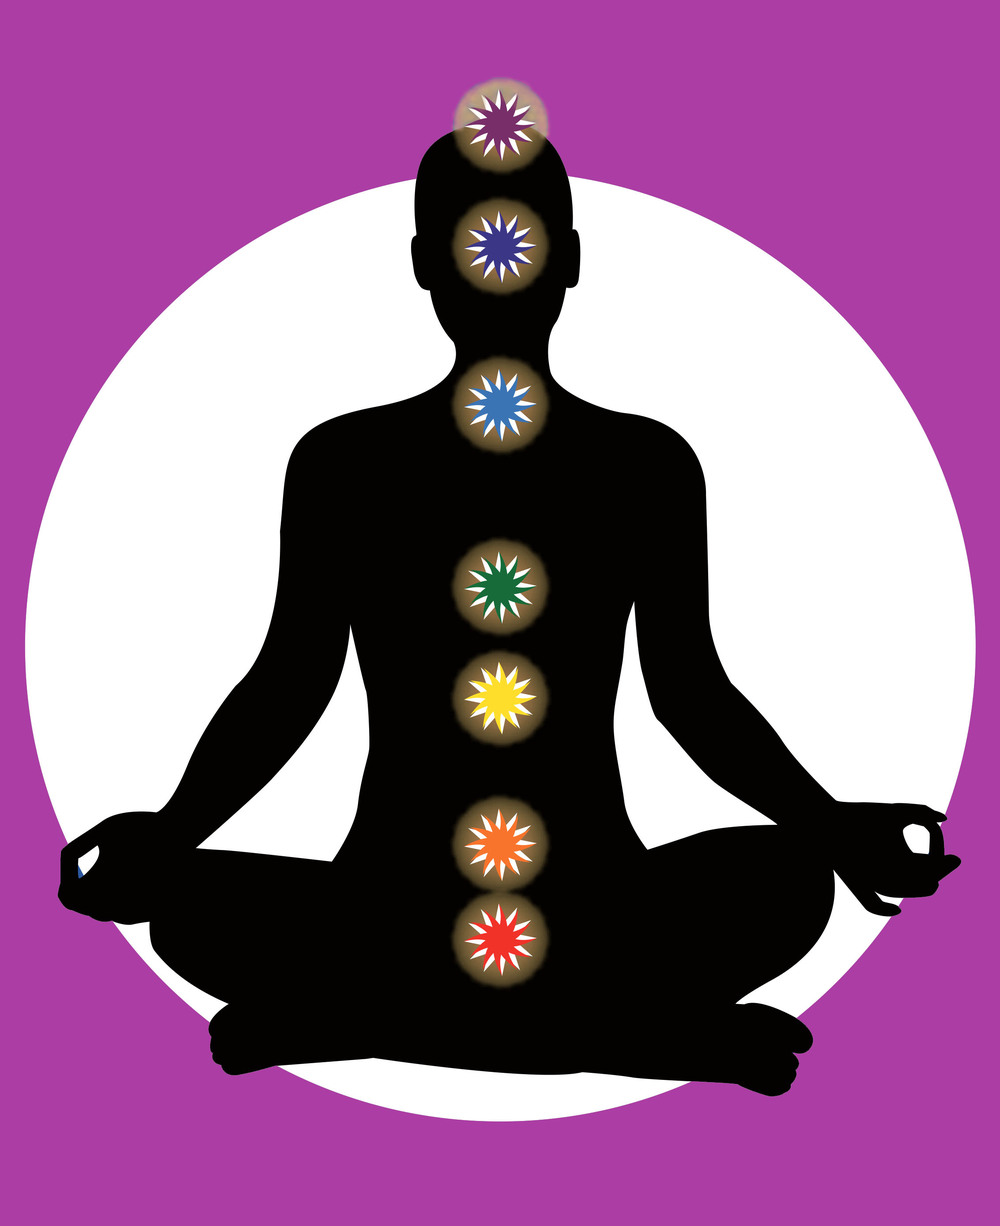 The Seven Main Chakras (from top to bottom): Crown, 3rd Eye, Throat, Heart, Solar Plexus, Sacral and Root/Base